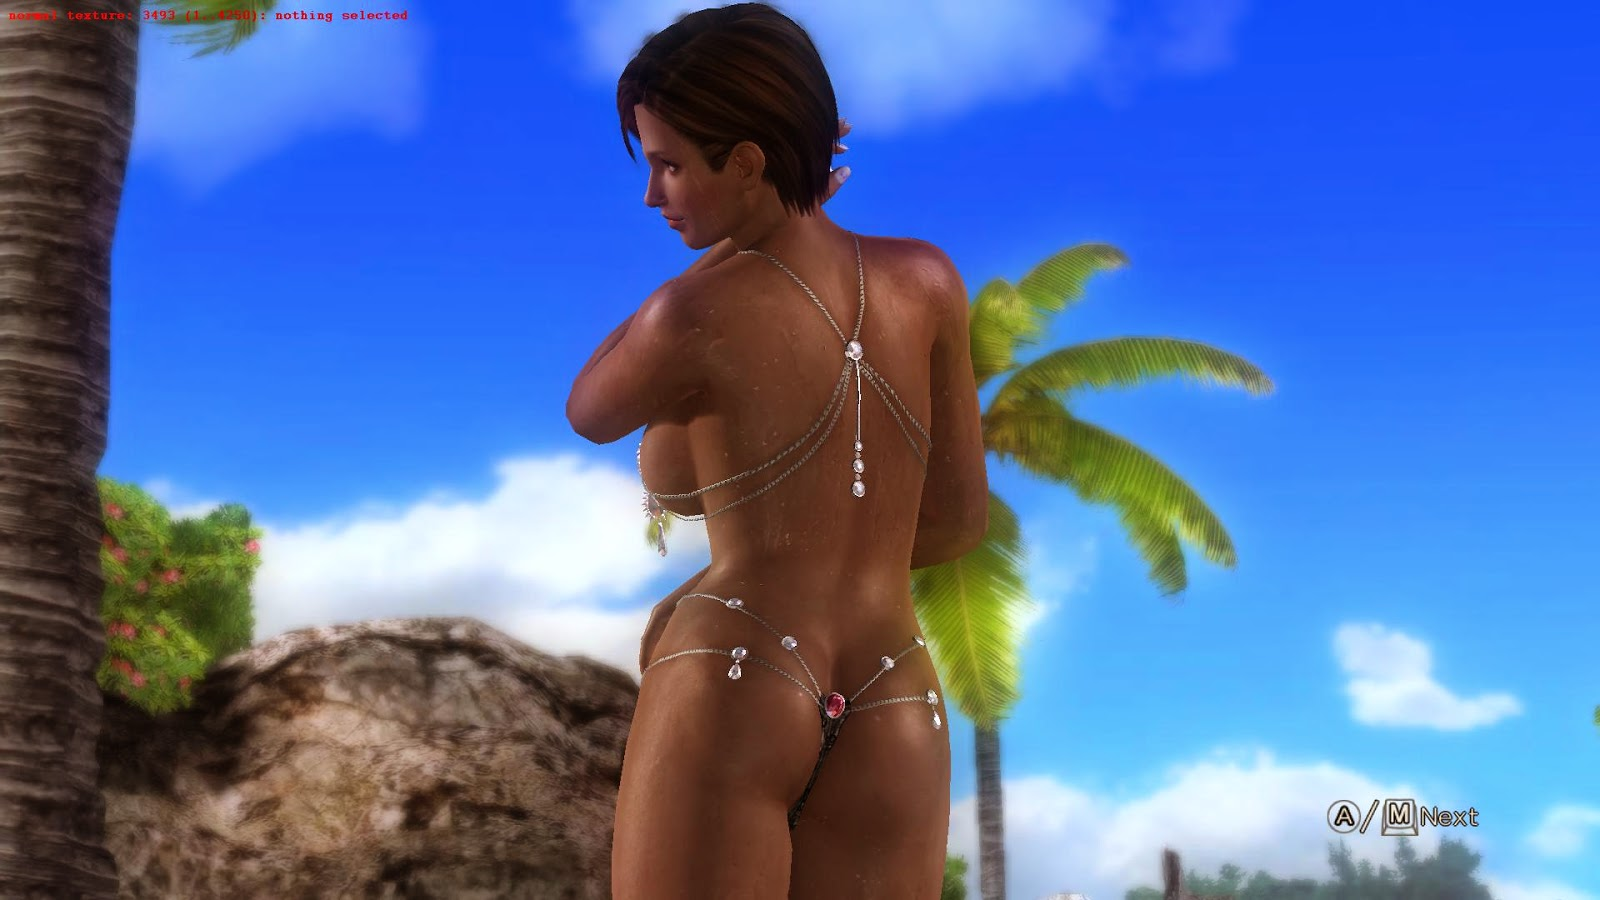 Doa5 nude download hentai tube